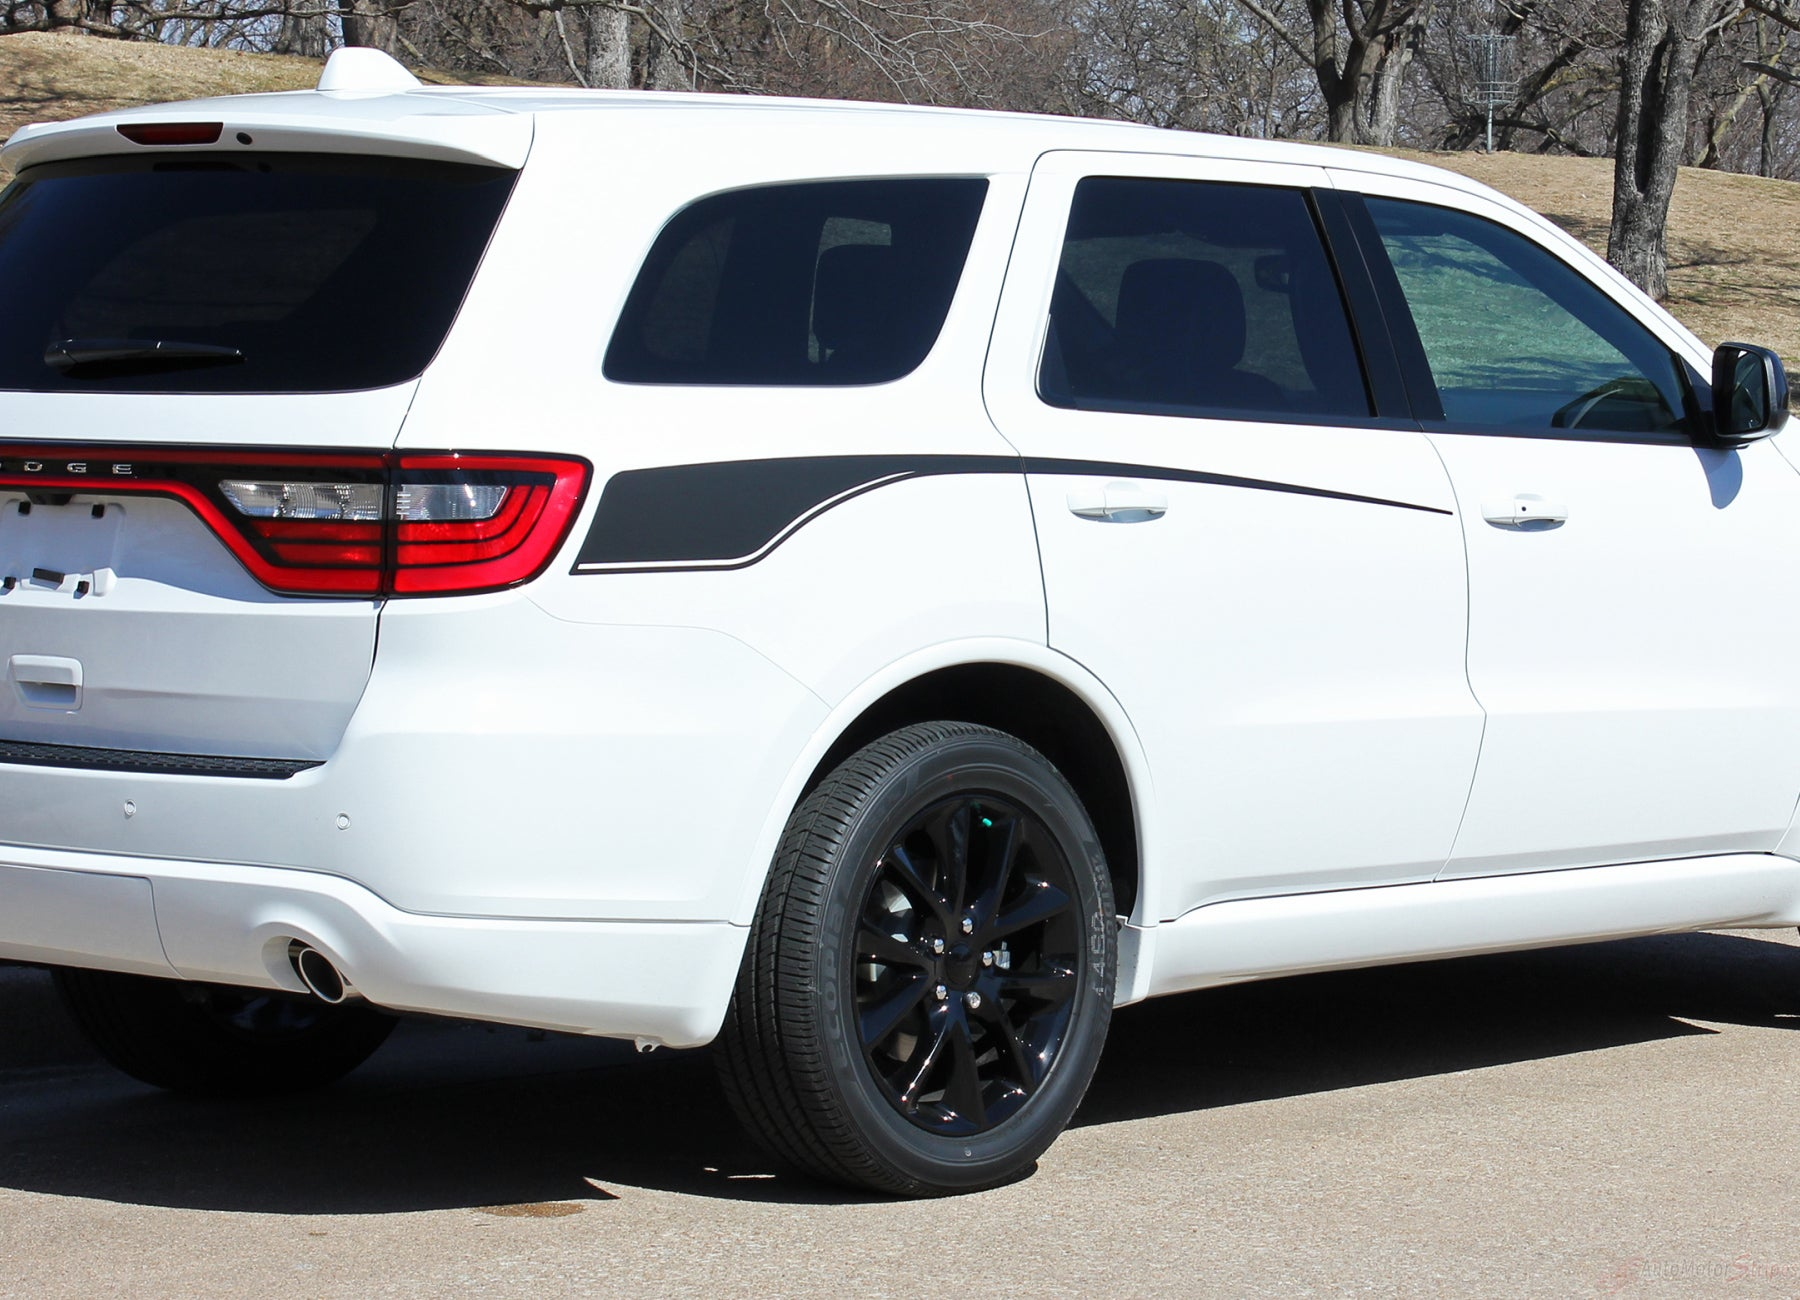 2011 2021 Dodge Durango Side Door Stripes Vinyl Graphic Suv Decals Auto Motor Stripes Decals Vinyl Graphics And 3m Striping Kits